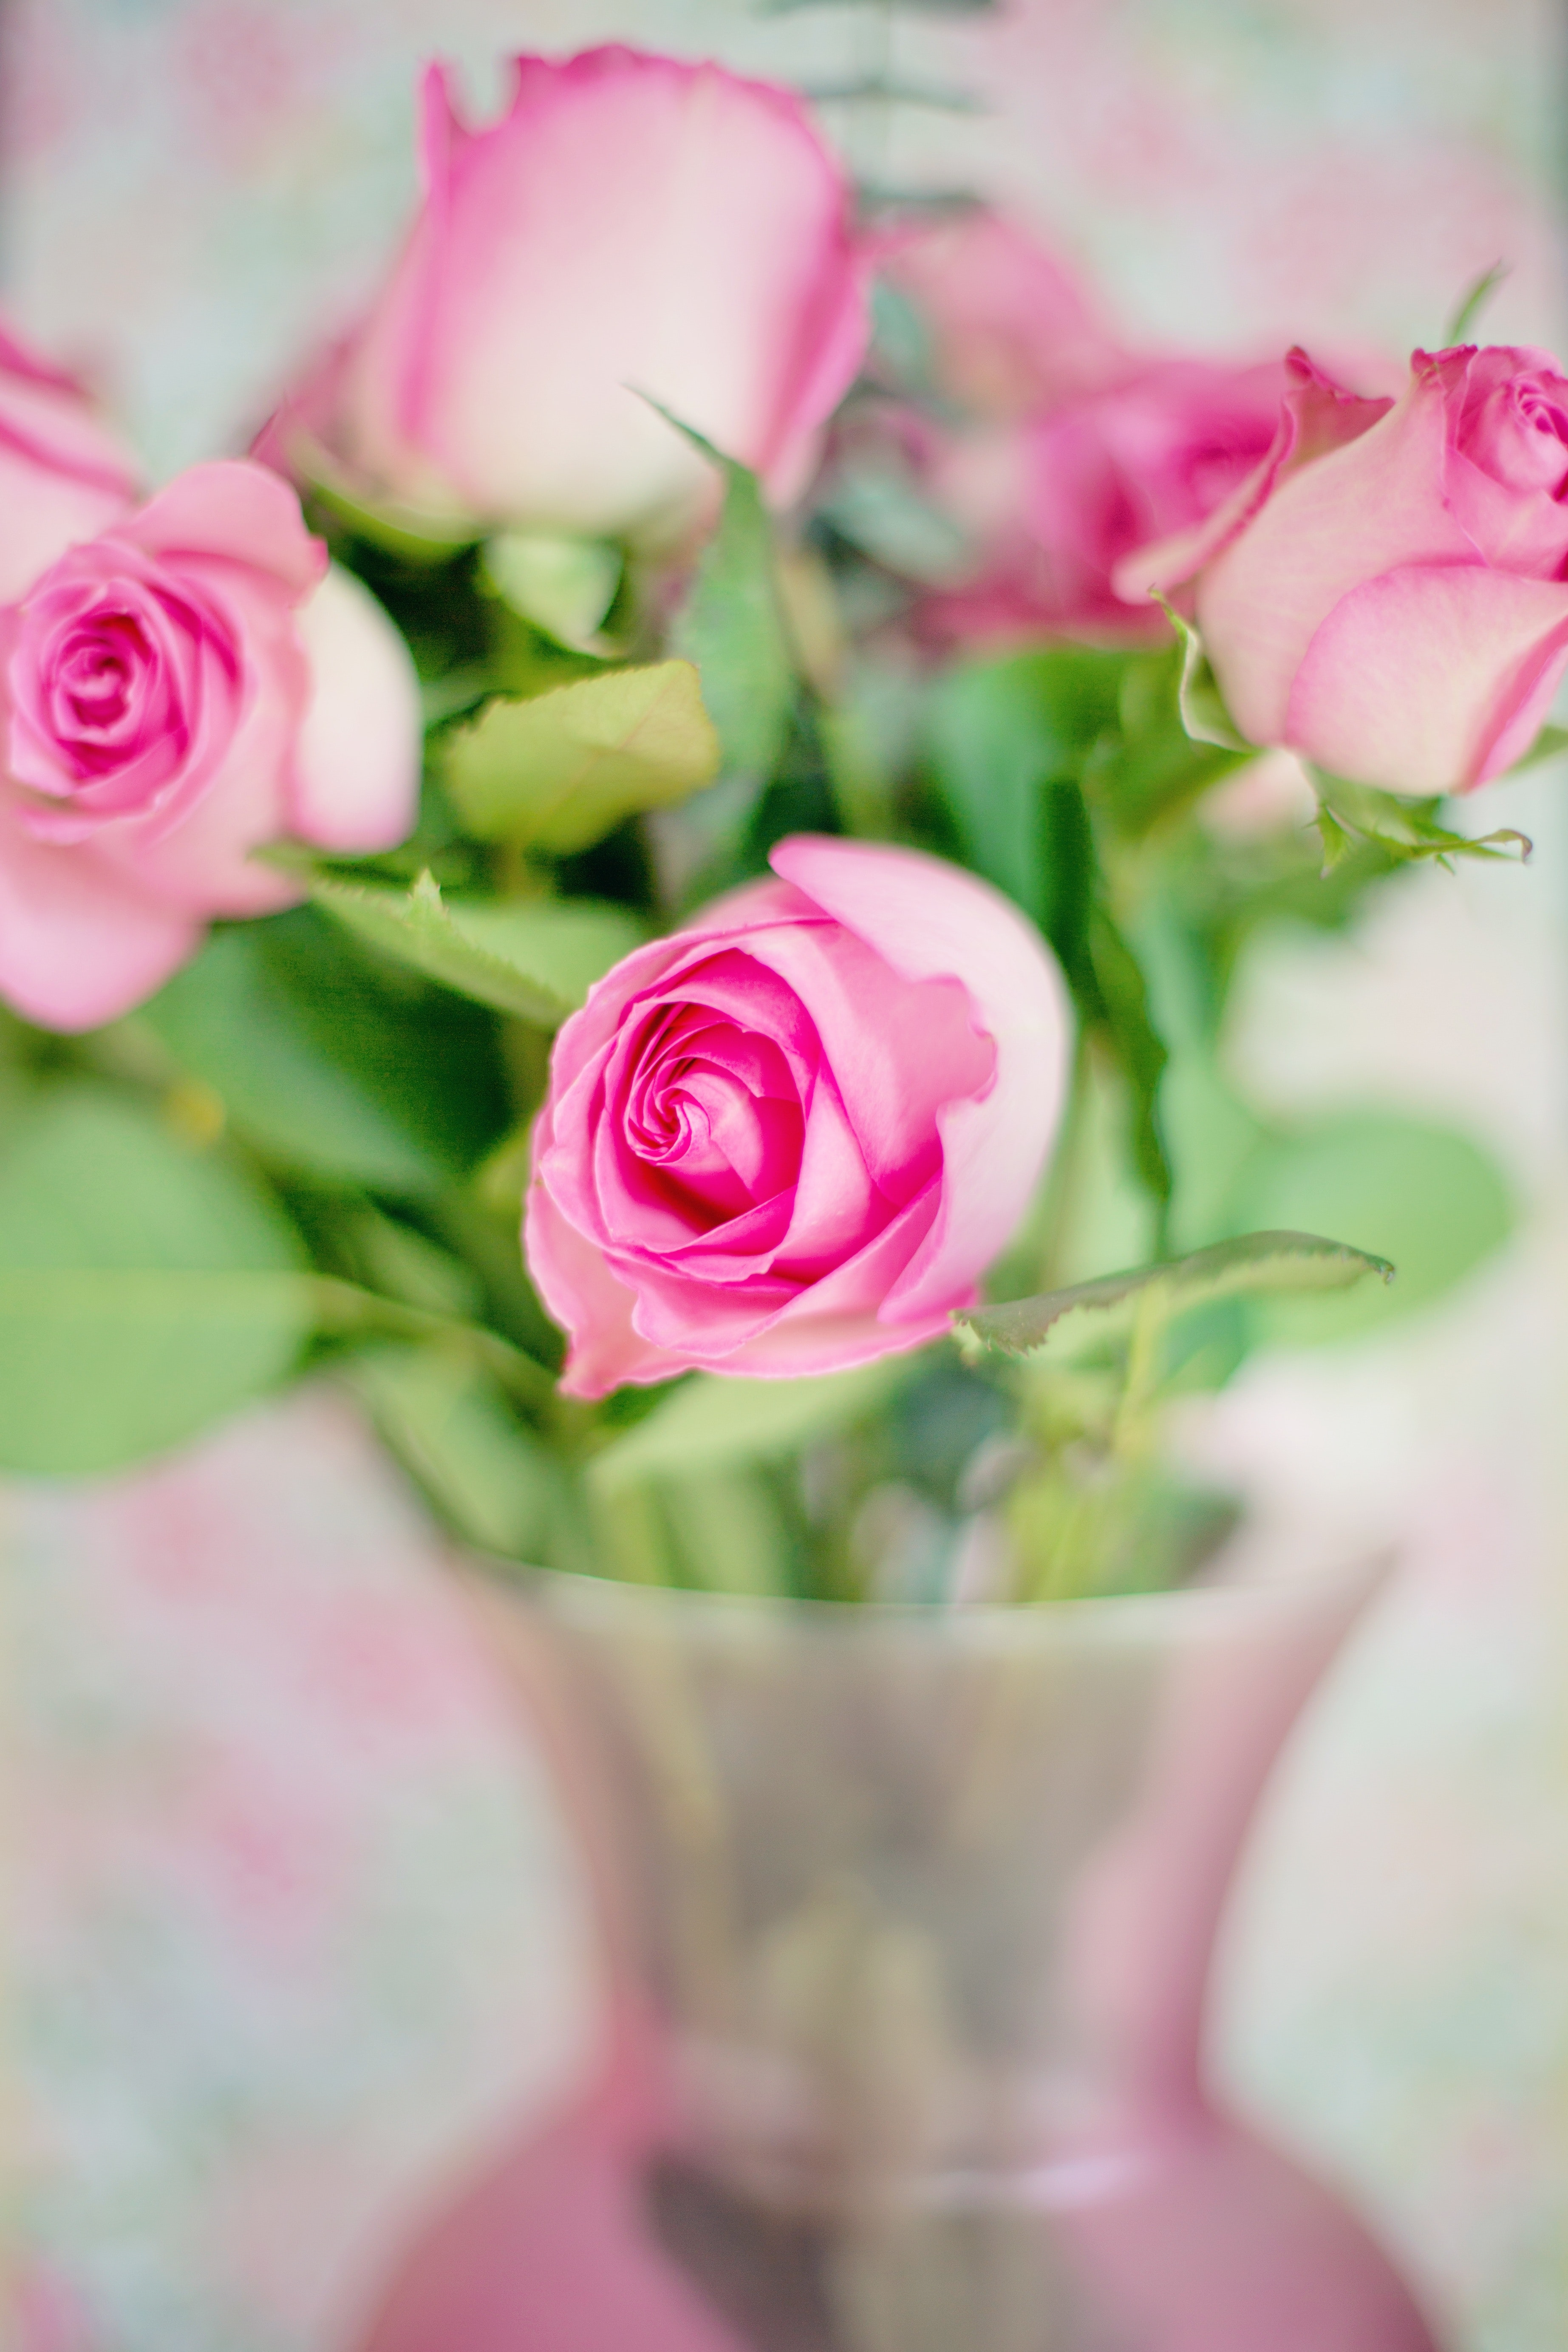 1000 interesting flower vase photos pexels free stock photos pink flowers with green leaves fetching more photos mightylinksfo